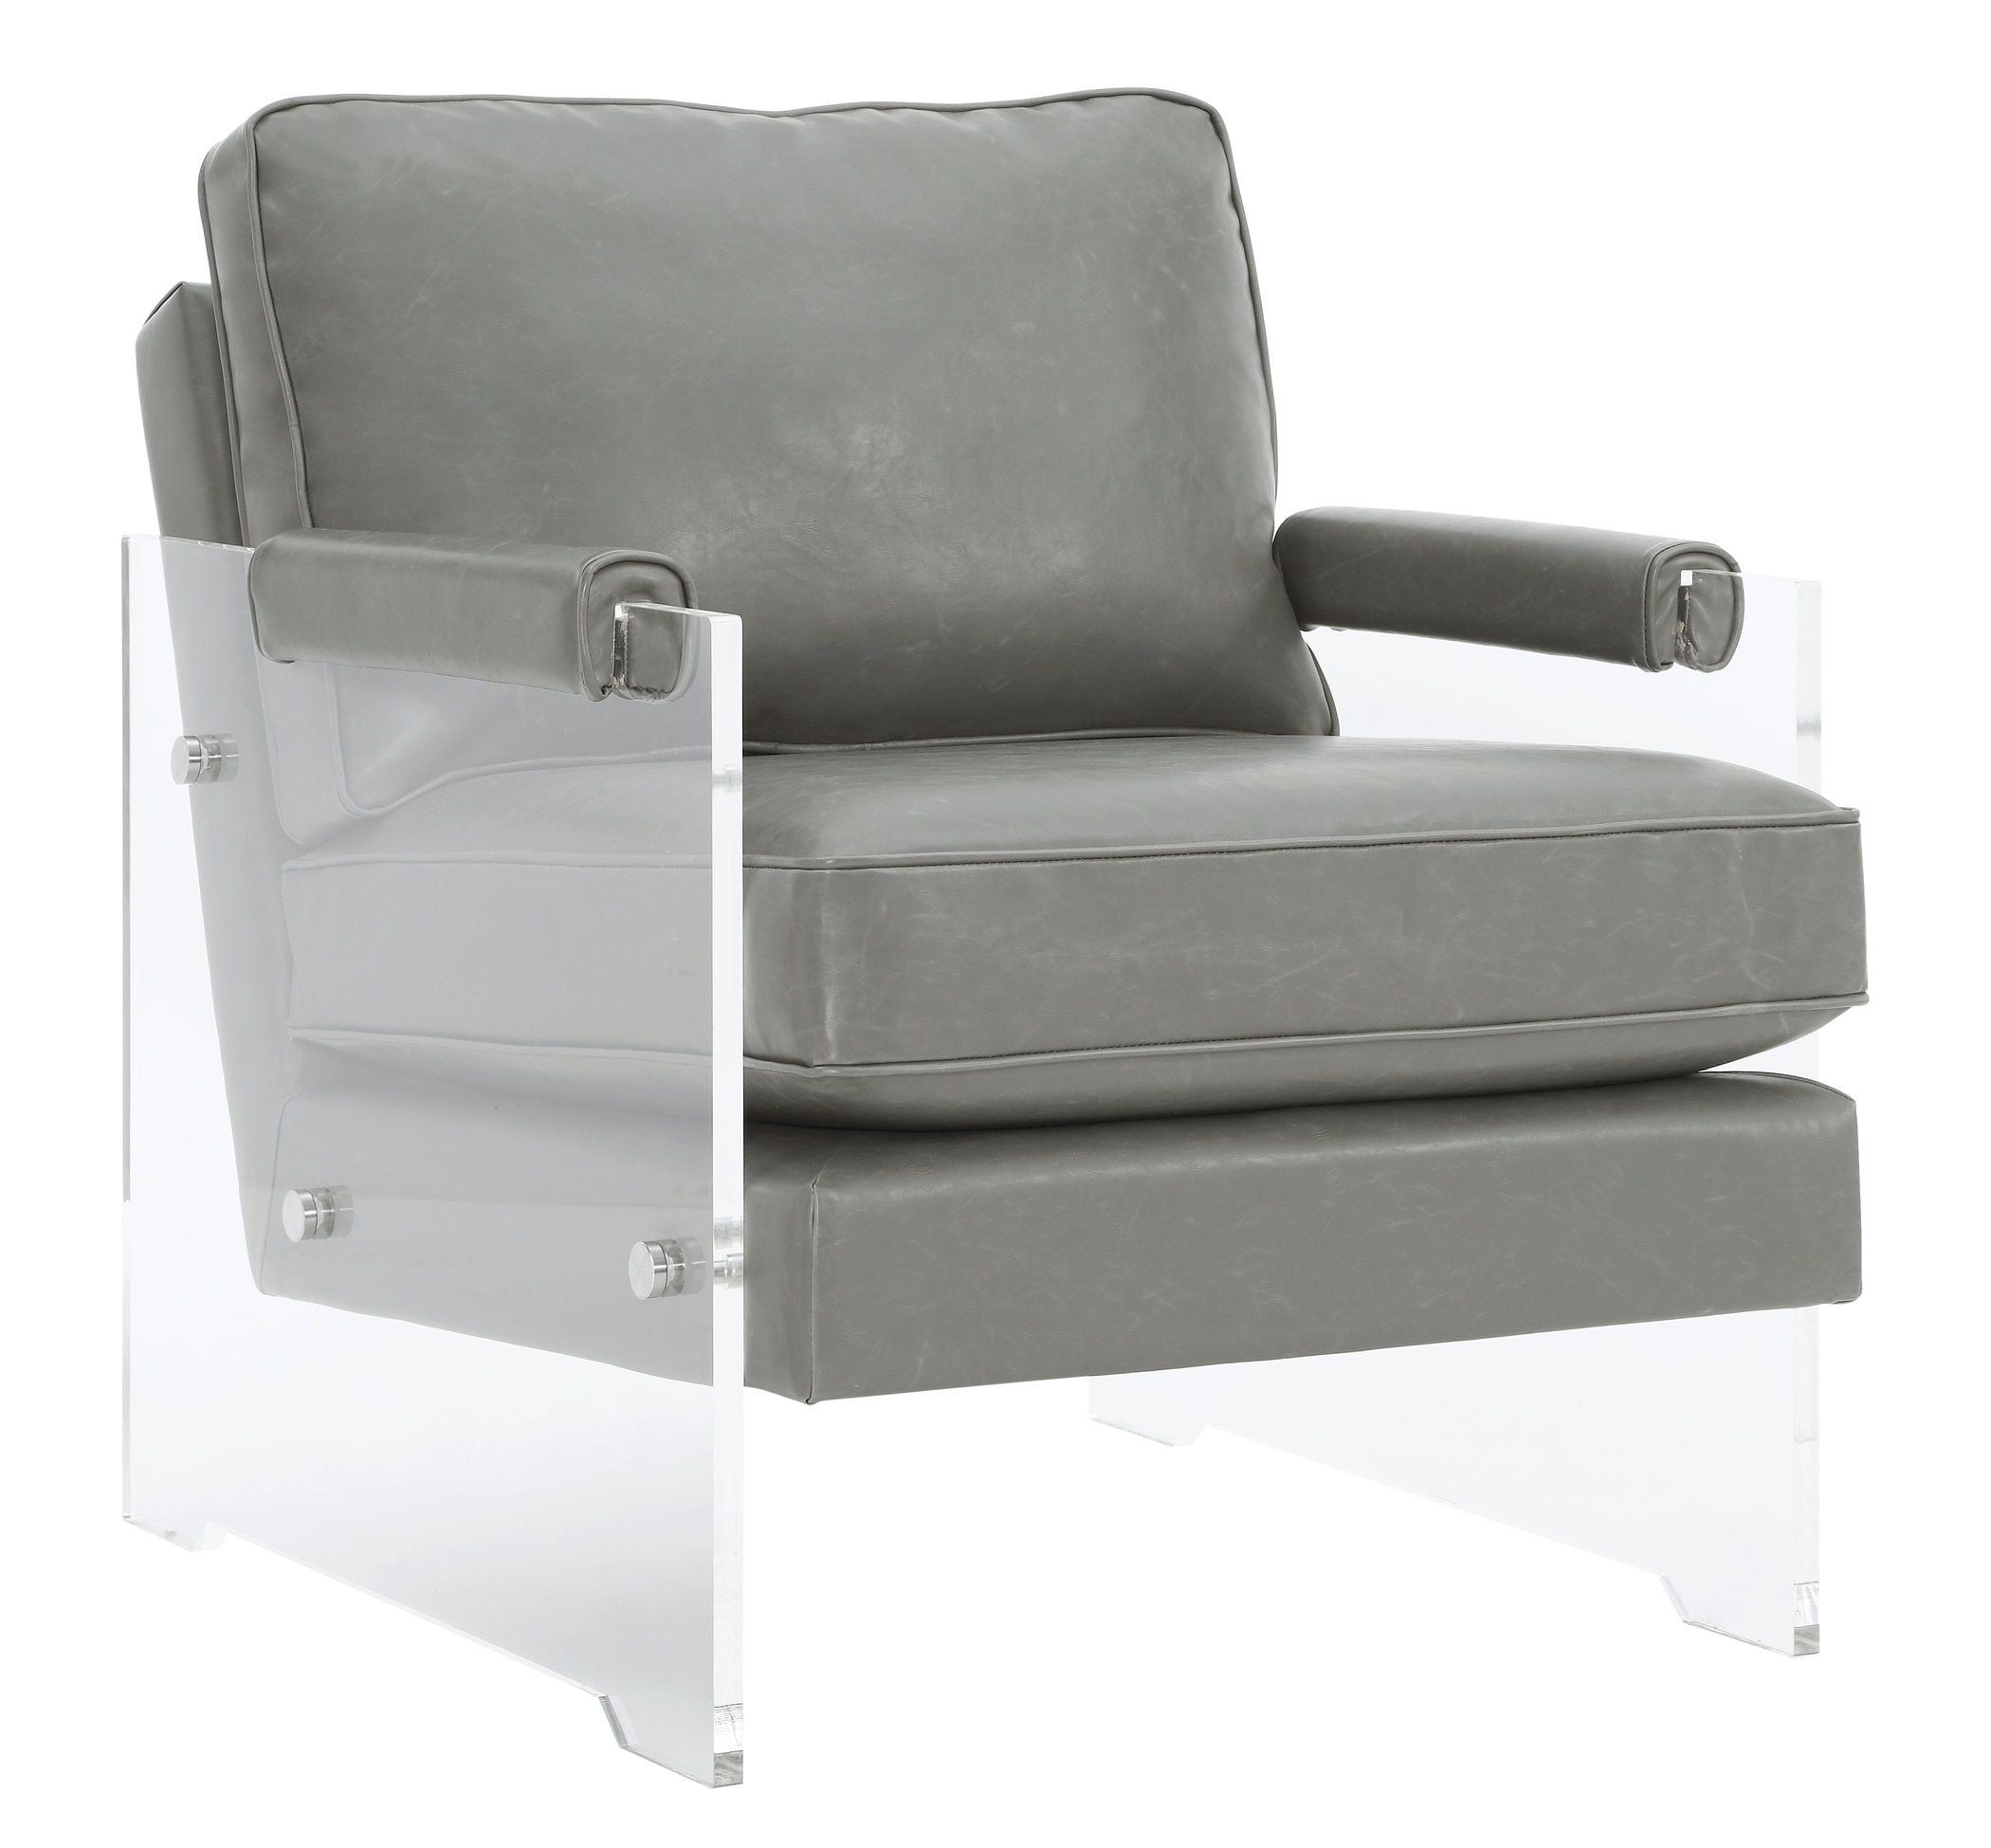 Serena Grey Eco Leather and Lucite Chair from TOV